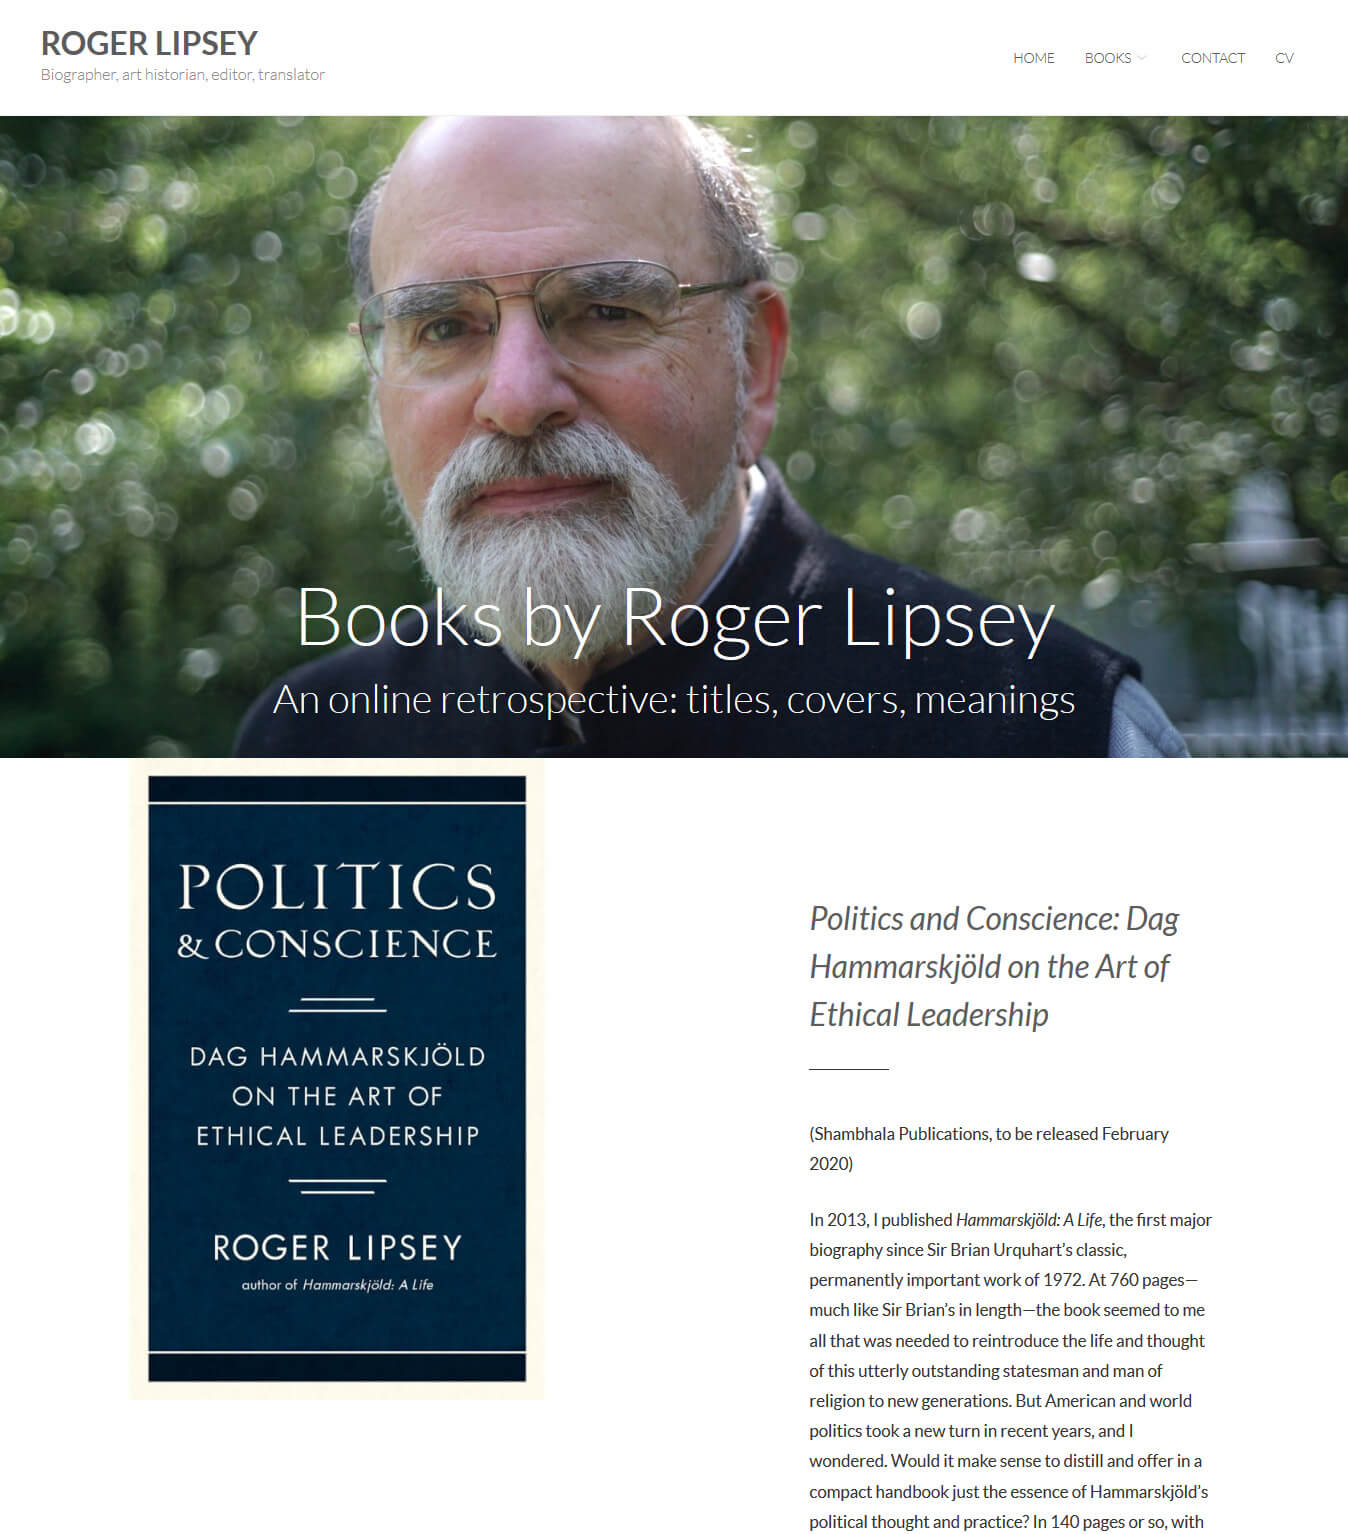 Roger Lipsey - Author, Biographer, Art historian, Editor, Translator